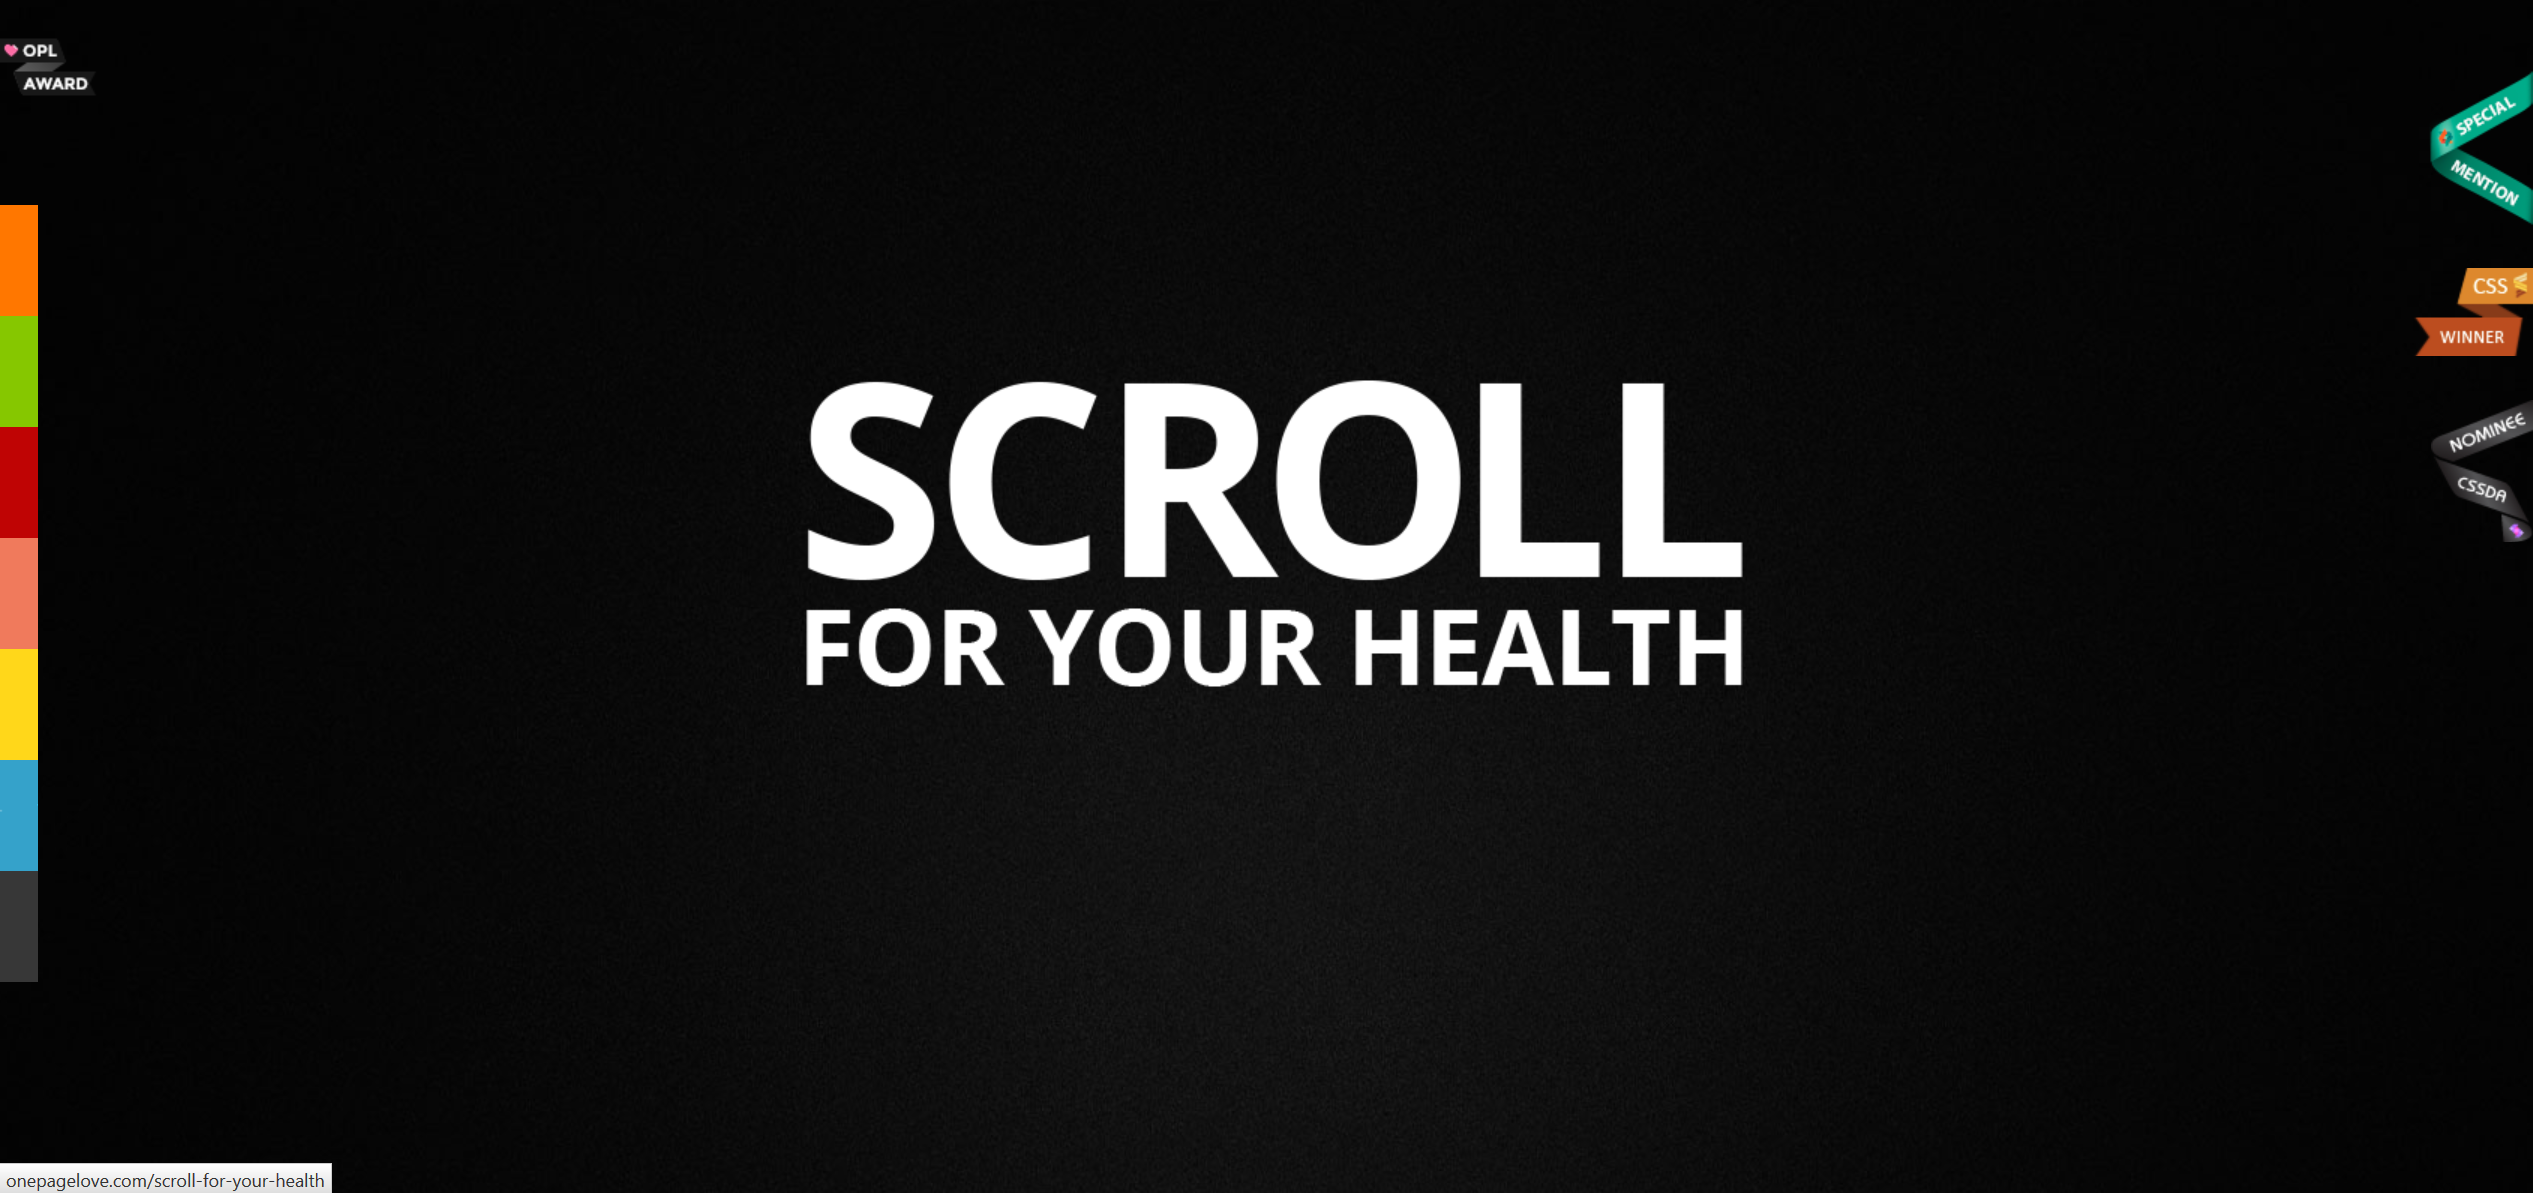 shibui scroll for your health